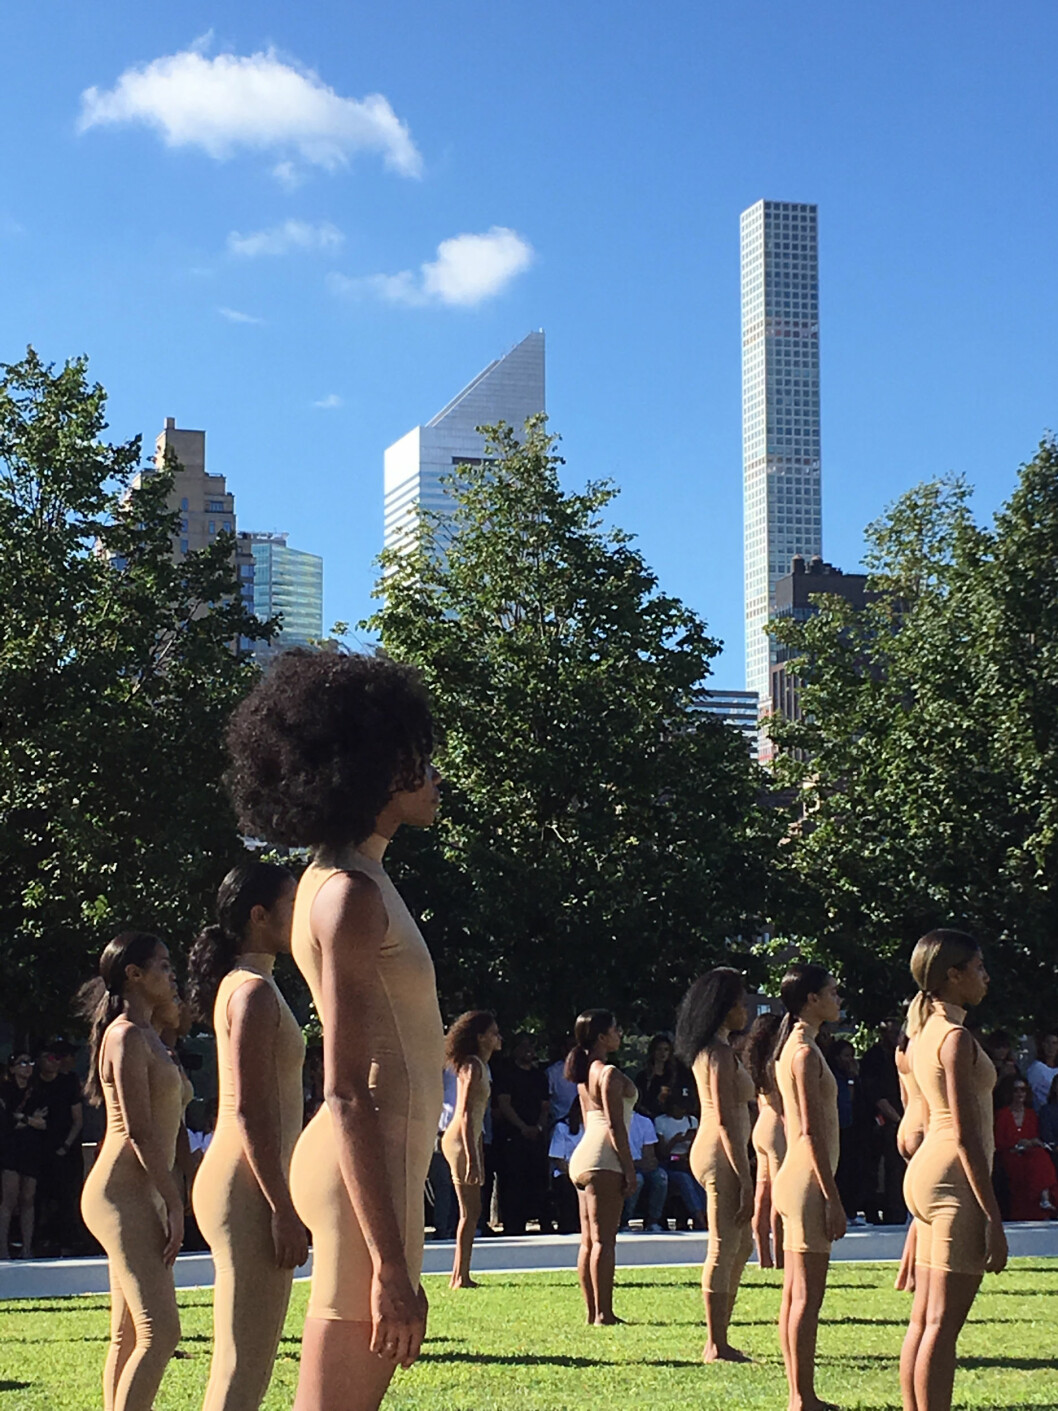 Models wear the Yeezy Season 4 collection by Kanye West during a fashion show, Wednesday, Sept. 7, 2016, at the Franklin D. Roosevelt Four Freedoms Park on Roosevelt Island in New York. The show, set to an eery soundtrack, helped kick off New York Fashion Week. (AP Photo/Leanne Italie) Foto: Ap